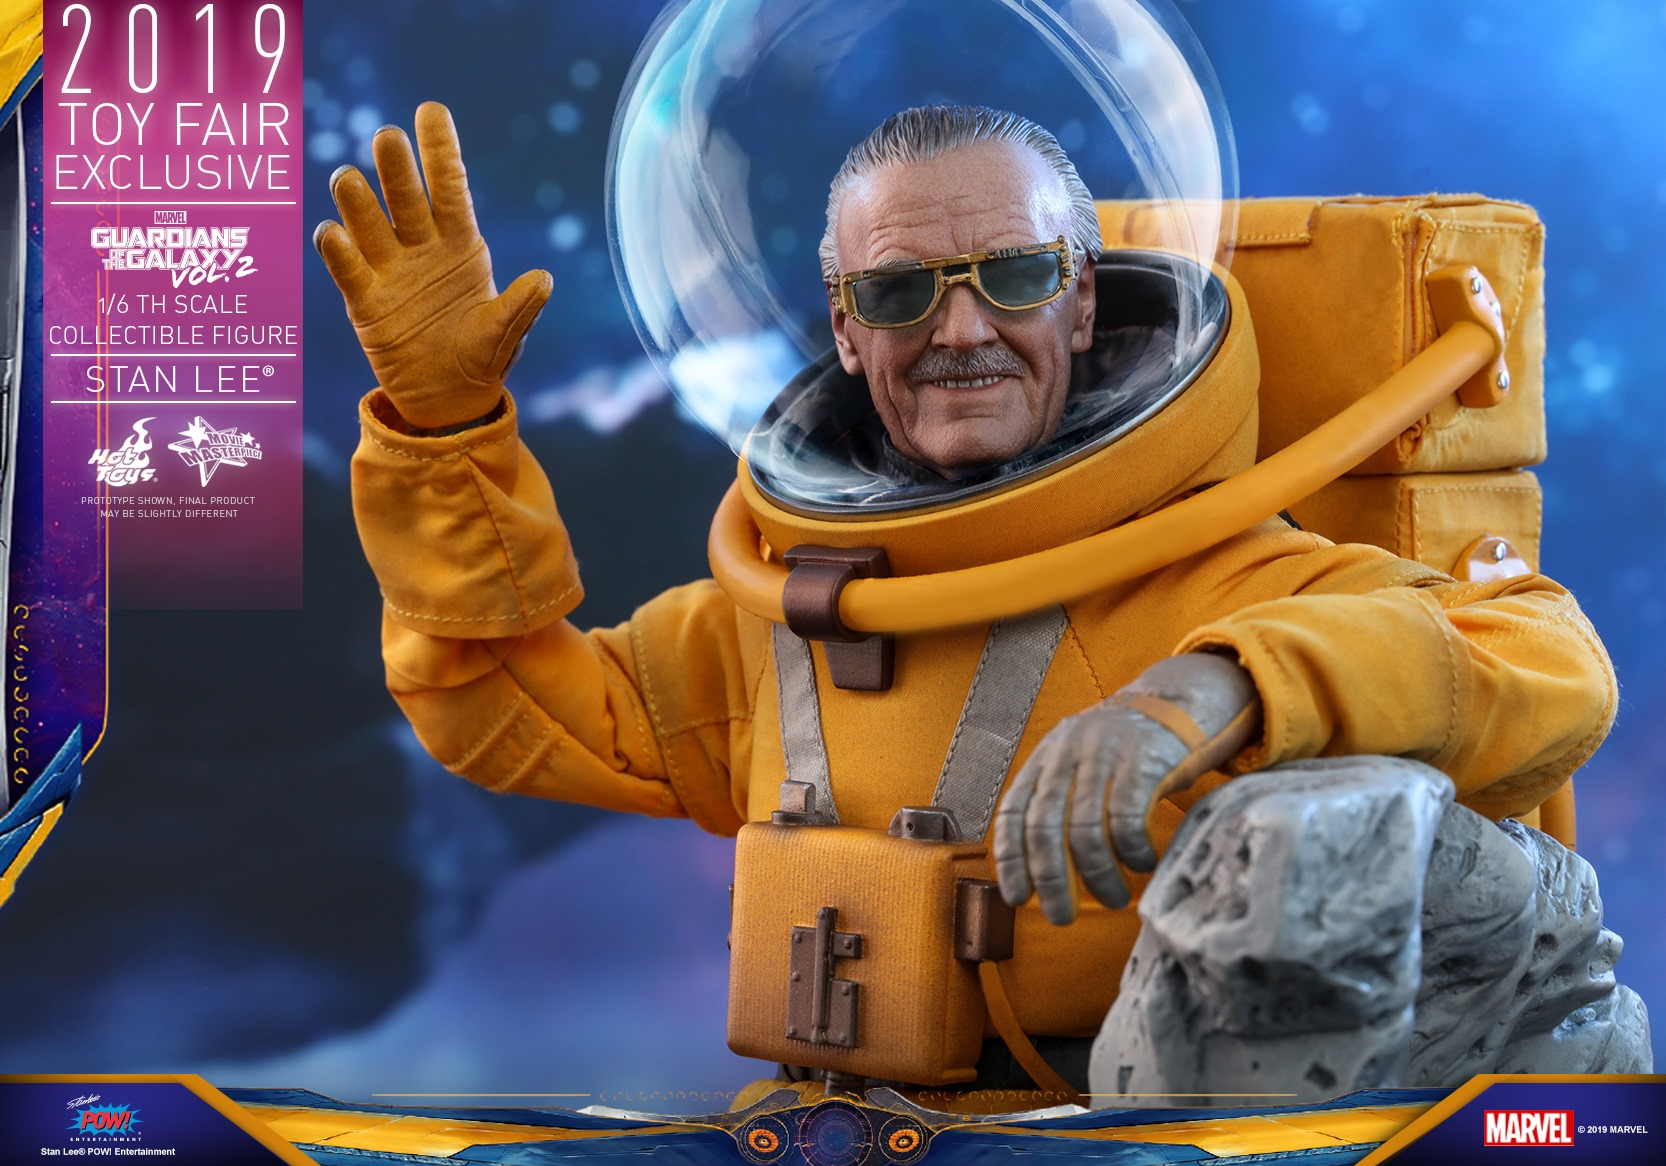 Guardians of the Galaxy 2 – Stan Lee Figure by Hot Toys – The Toyark – News Guardians of the Galaxy 2 – Stan Lee Figure by Hot Toys – The Toyark – News